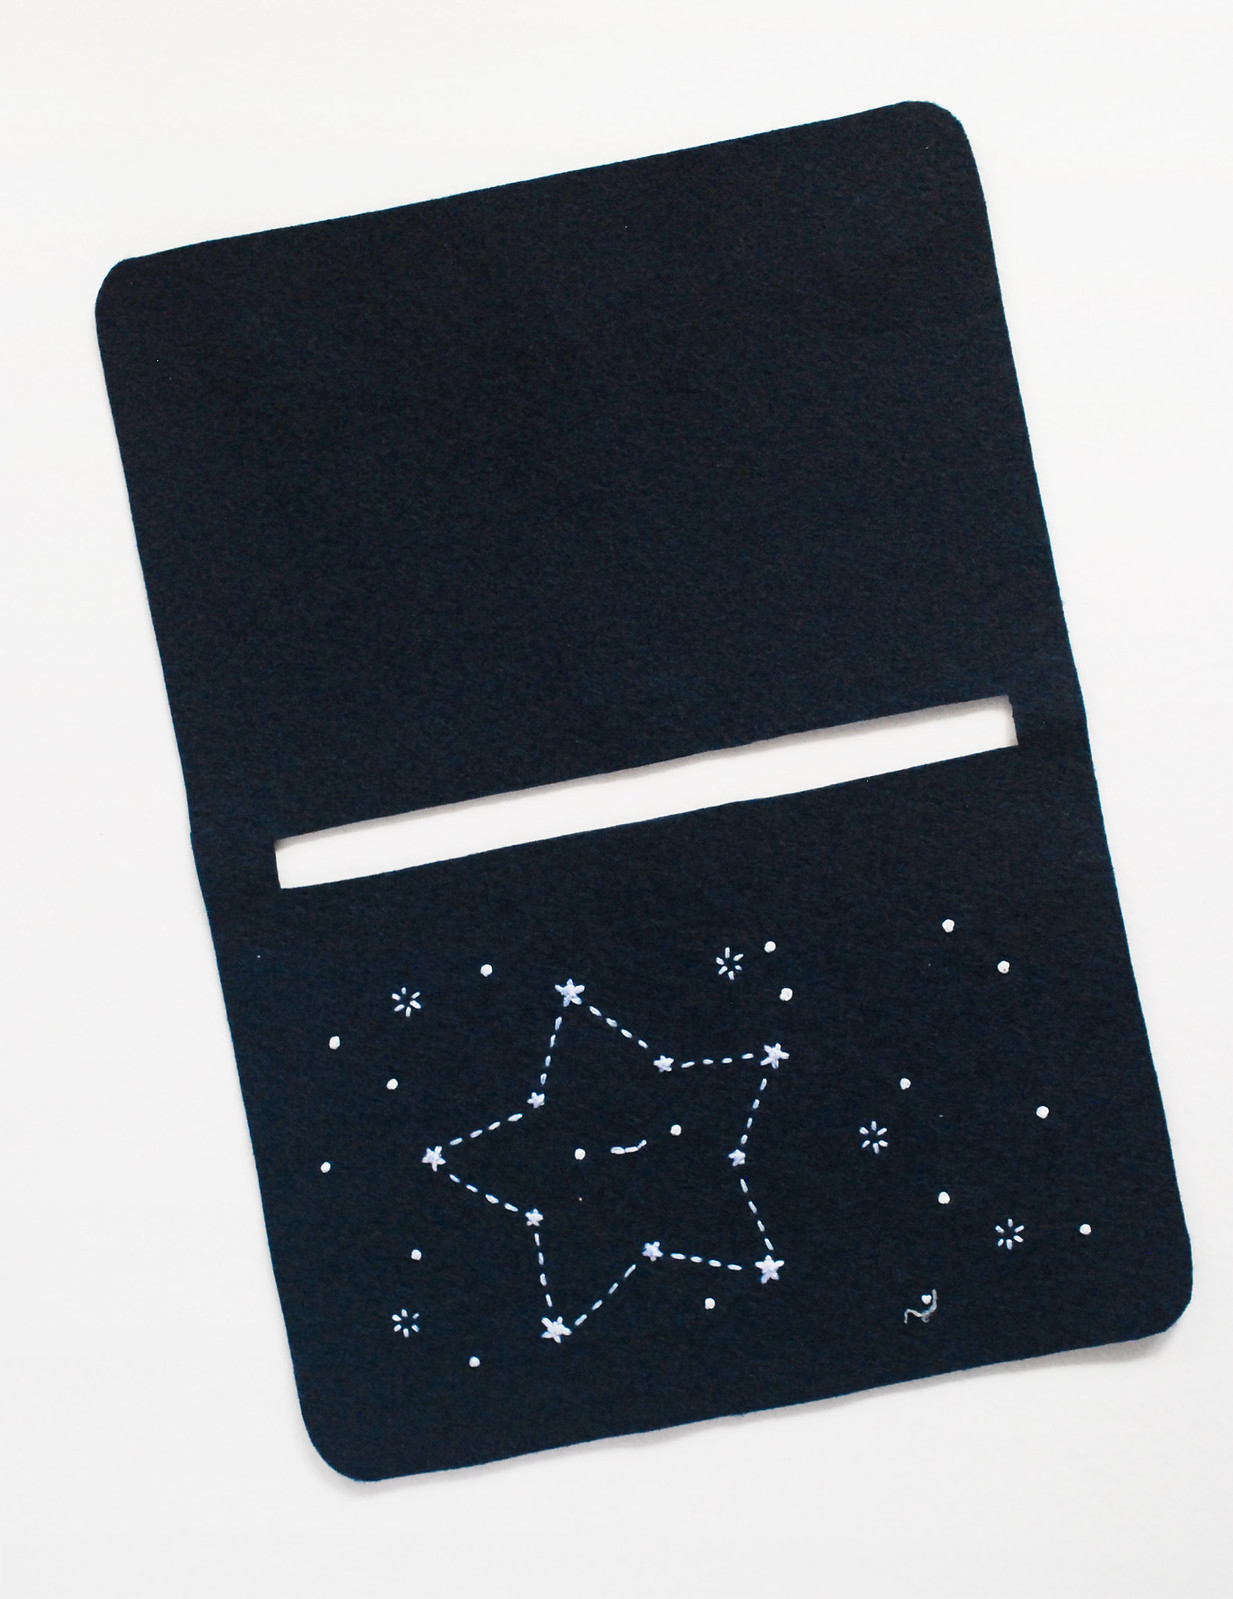 DIY Stargazing Zip Pouch